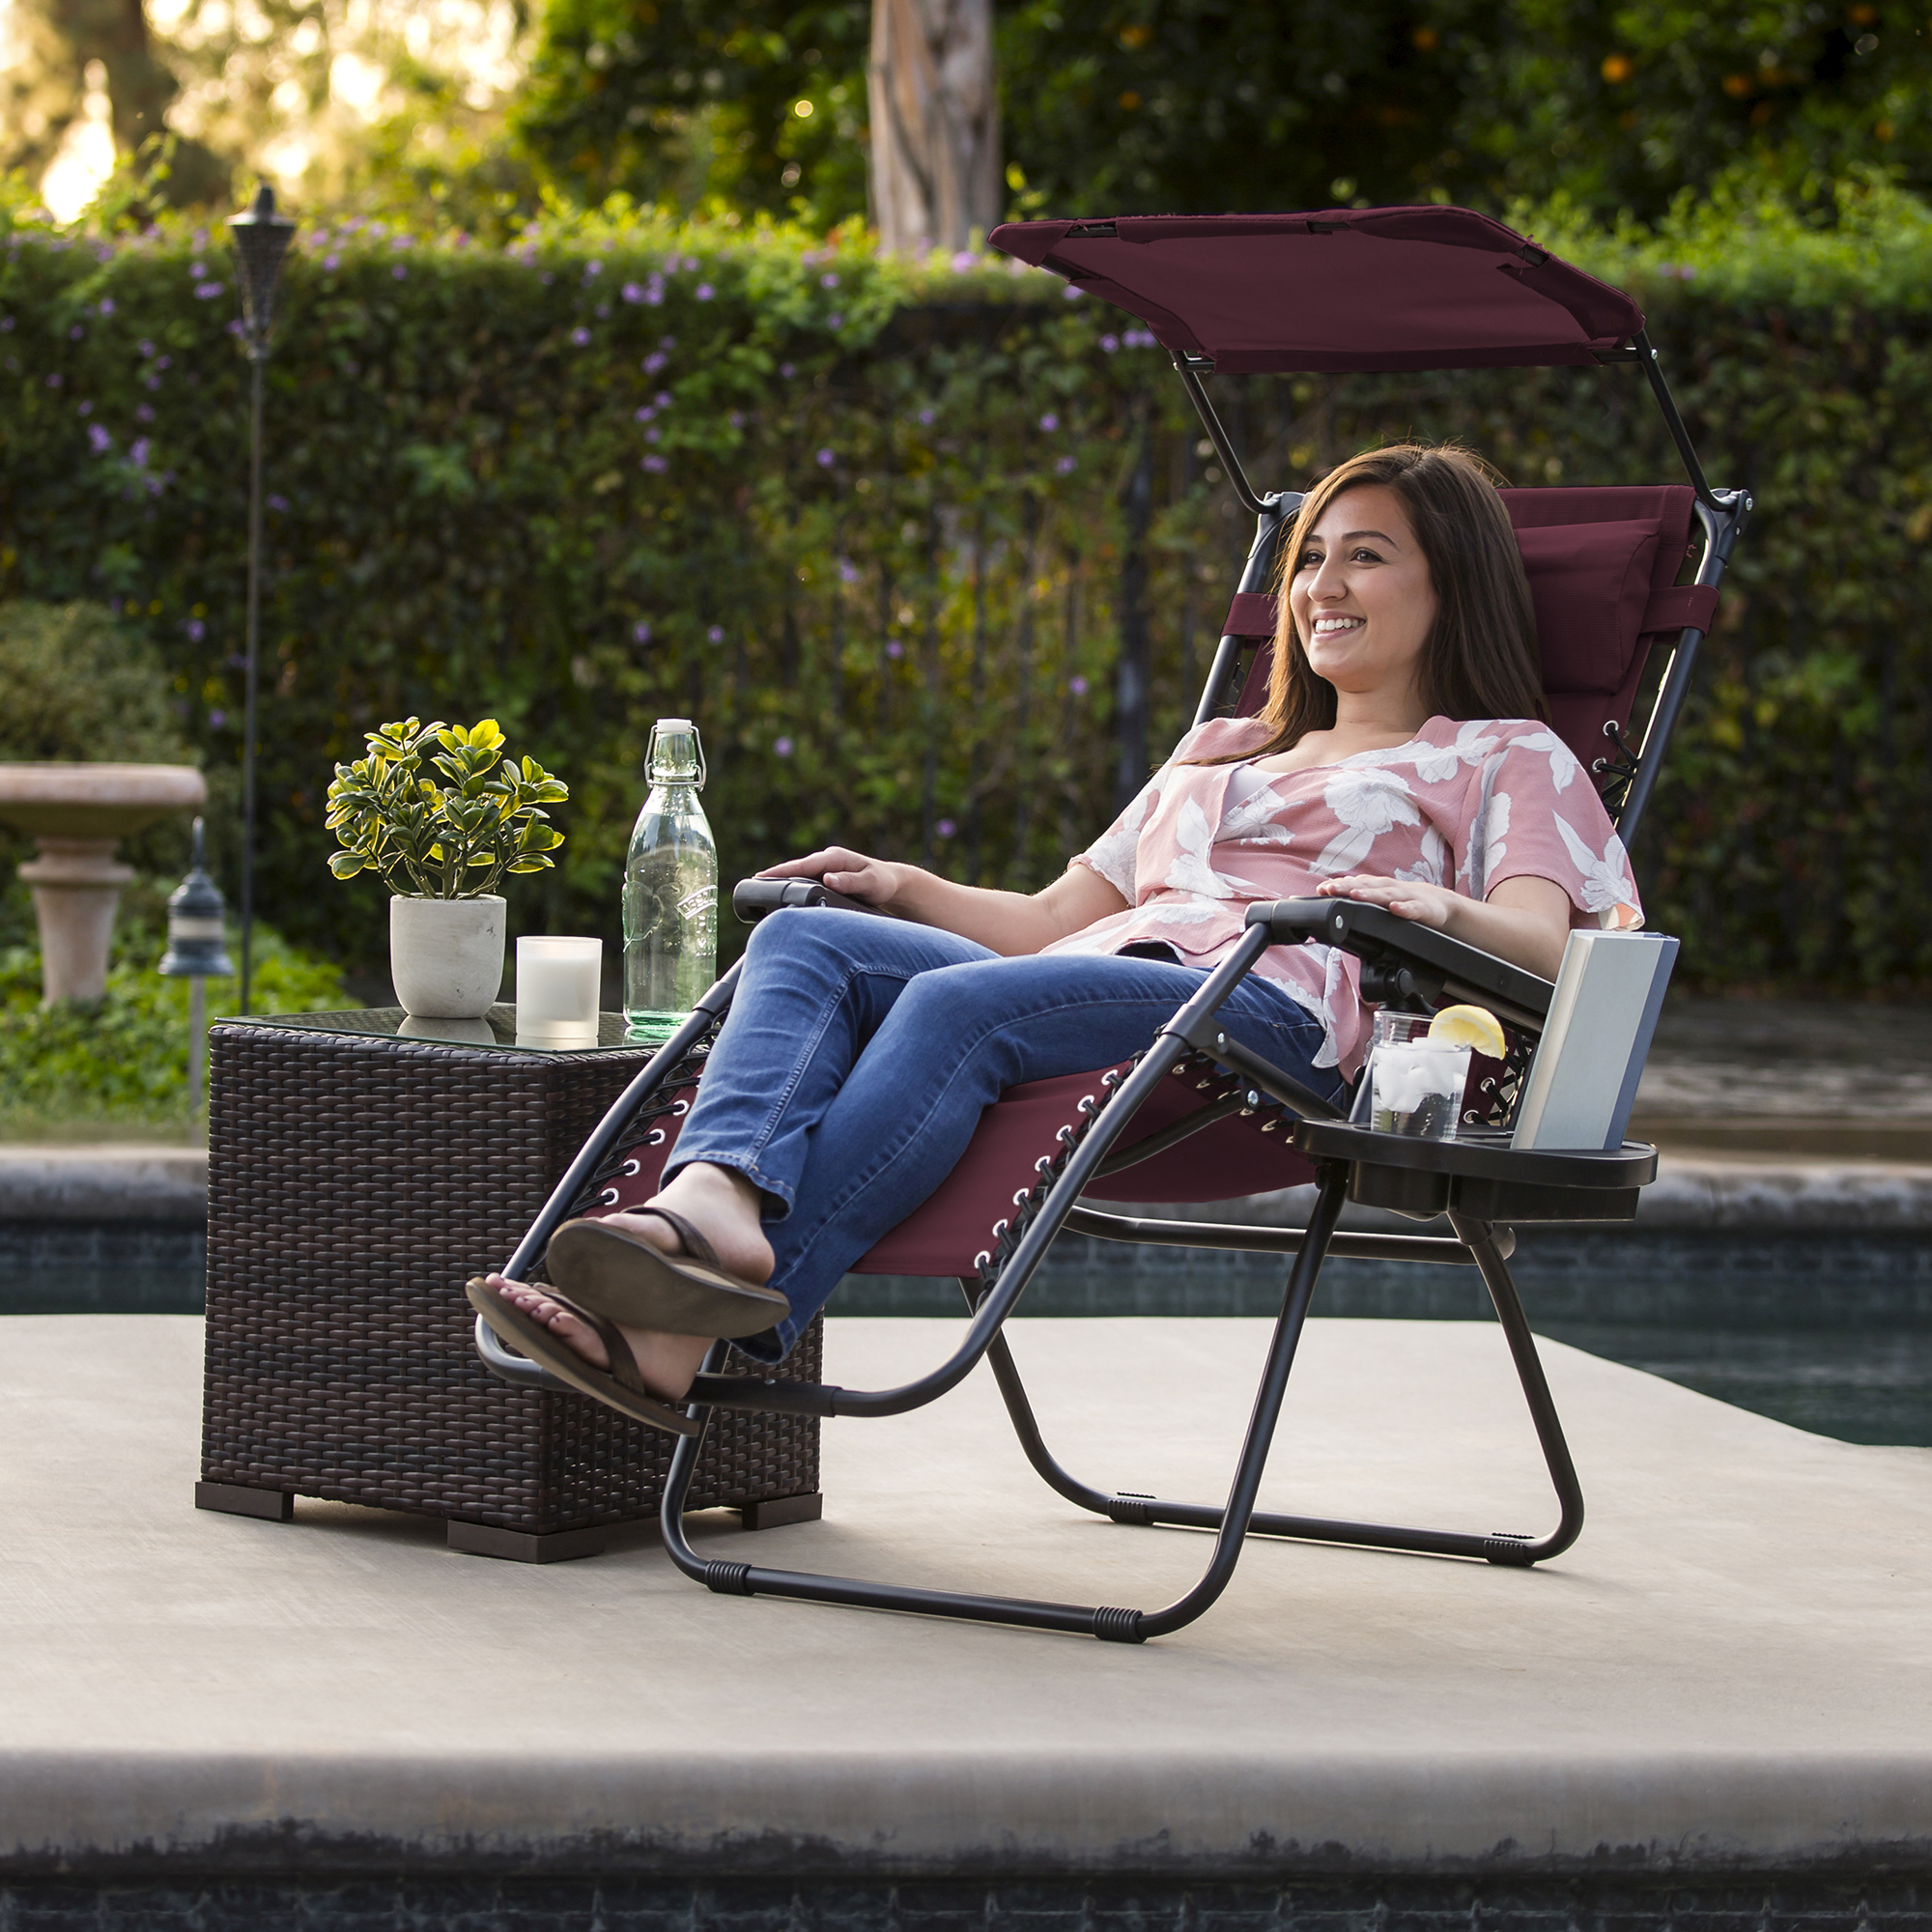 BCP-Folding-Zero-Gravity-Recliner-Lounge-Chair-w-Canopy-Cup-Holder thumbnail 30